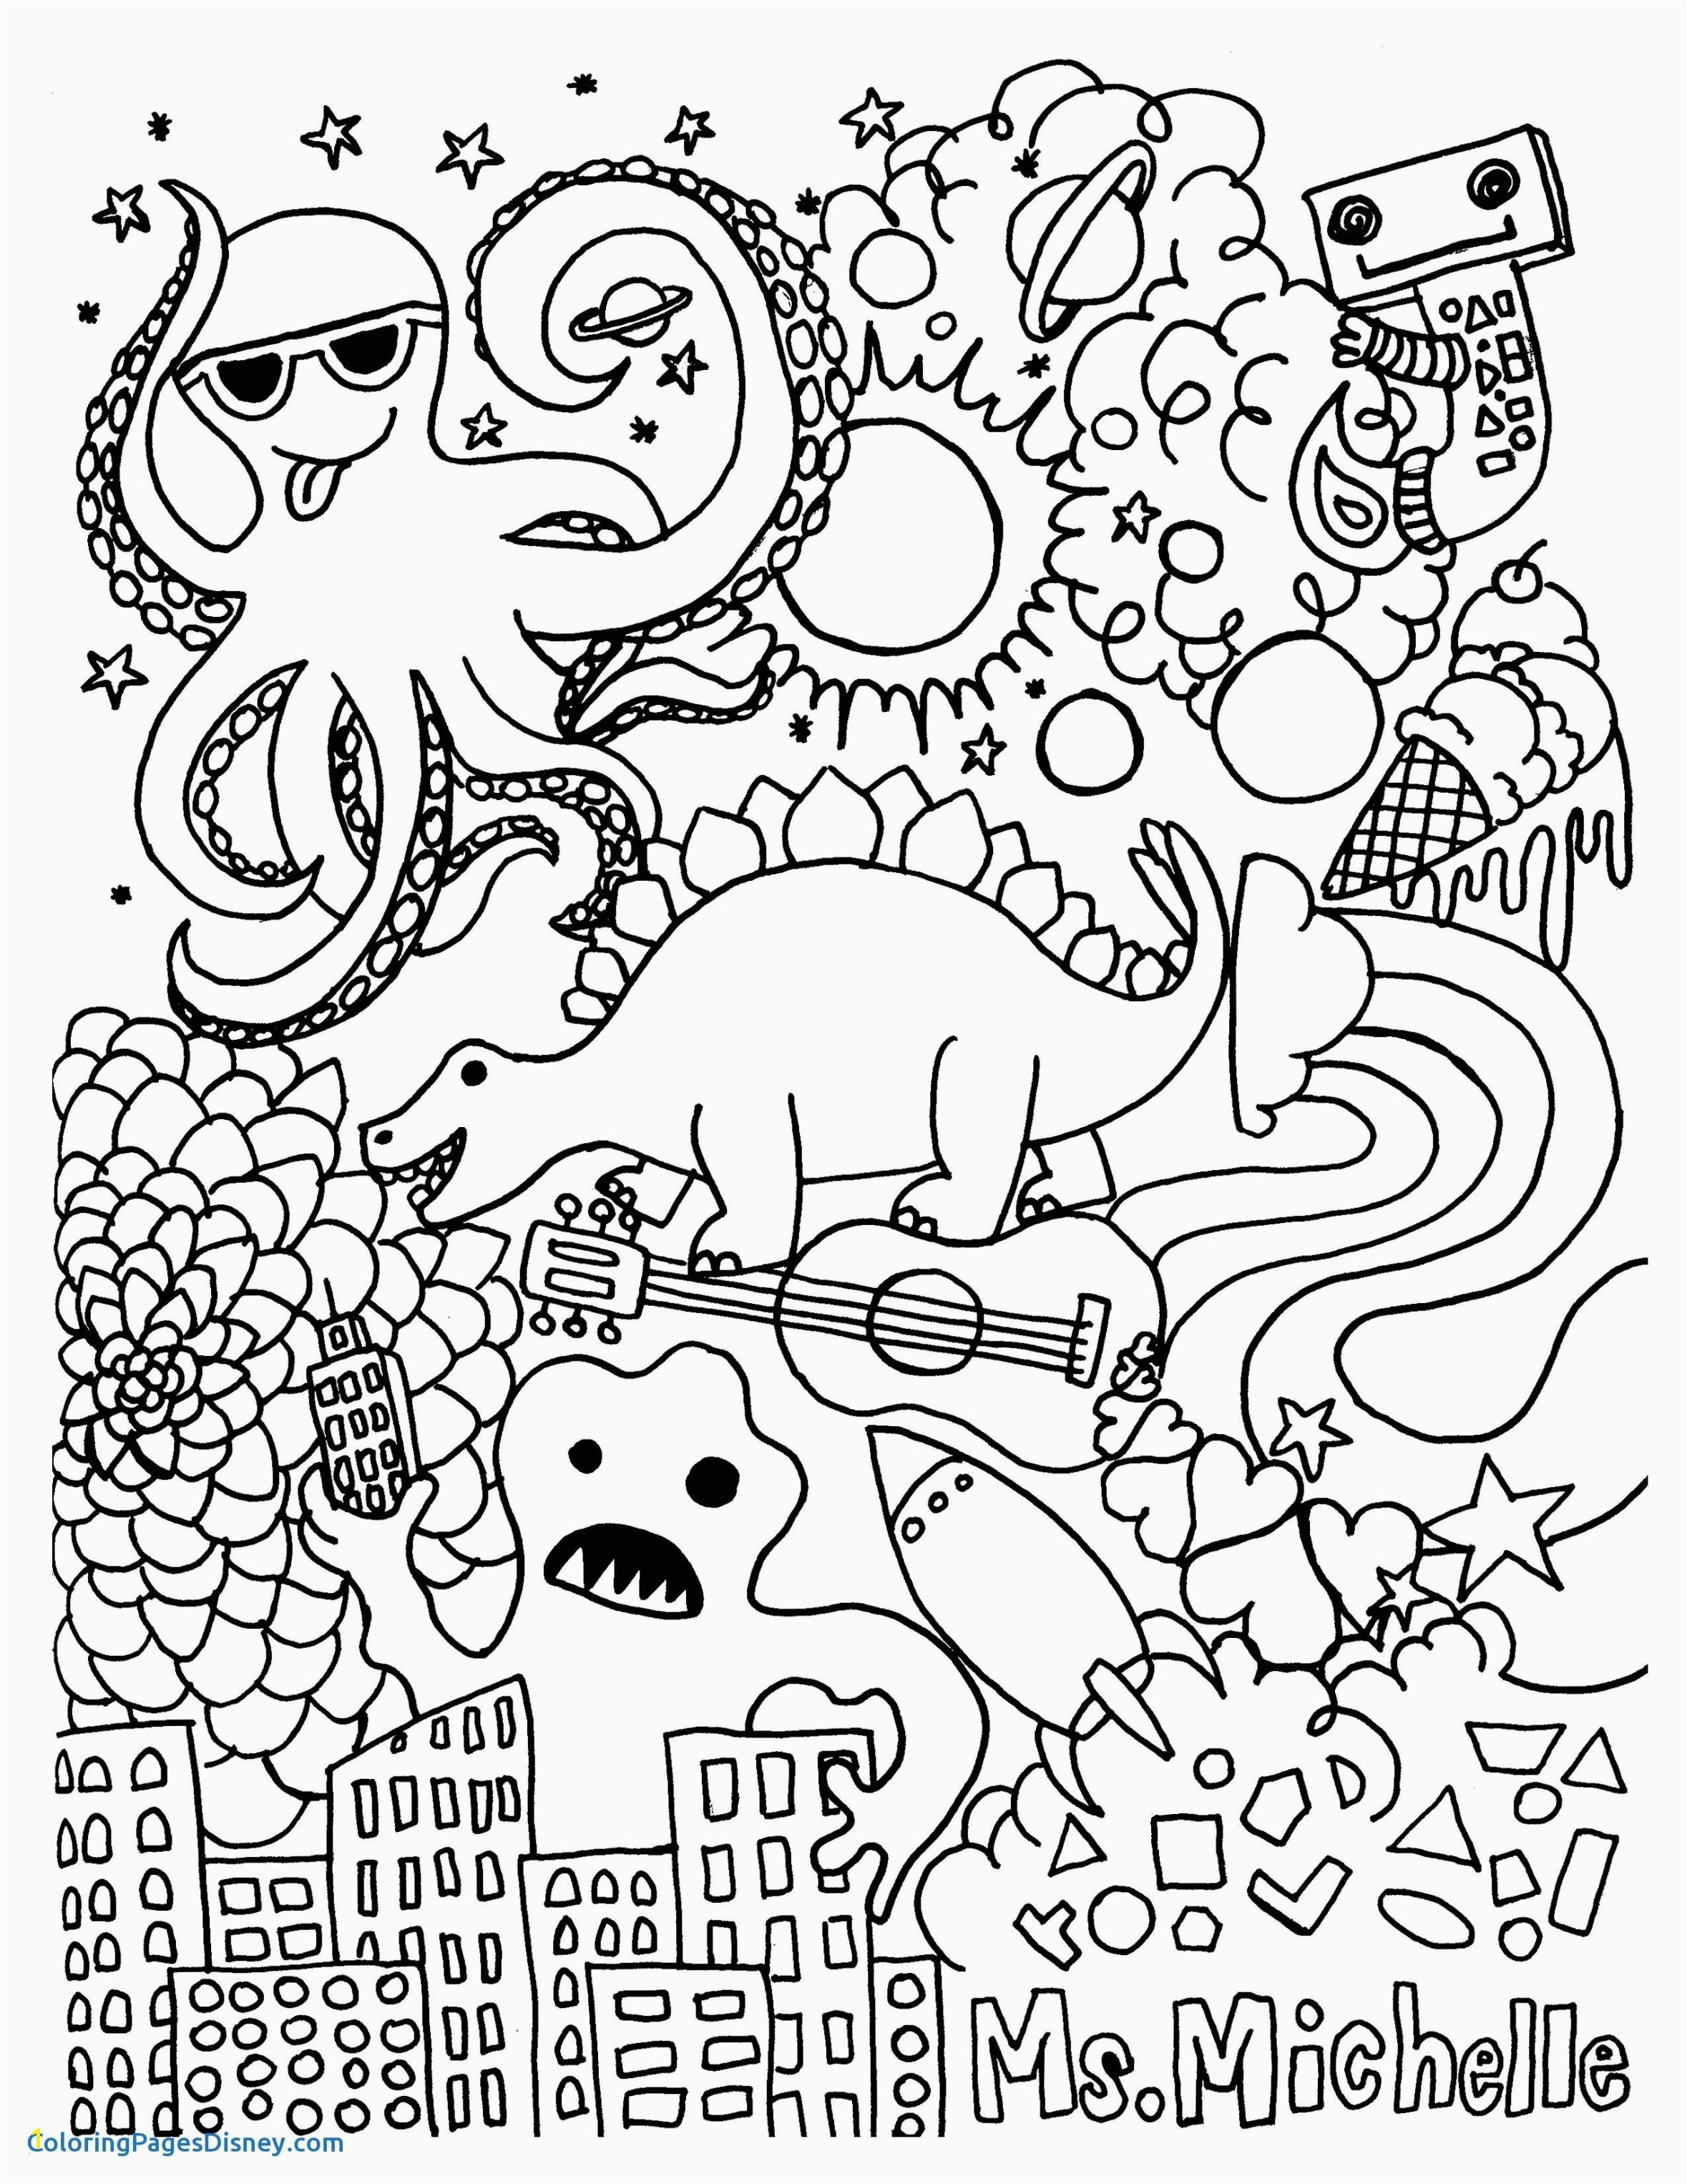 Moana Coloring Pages Disney Luxury Disney Coloring Printablesdisney Coloring Pages Pdf Back To School Free Printable